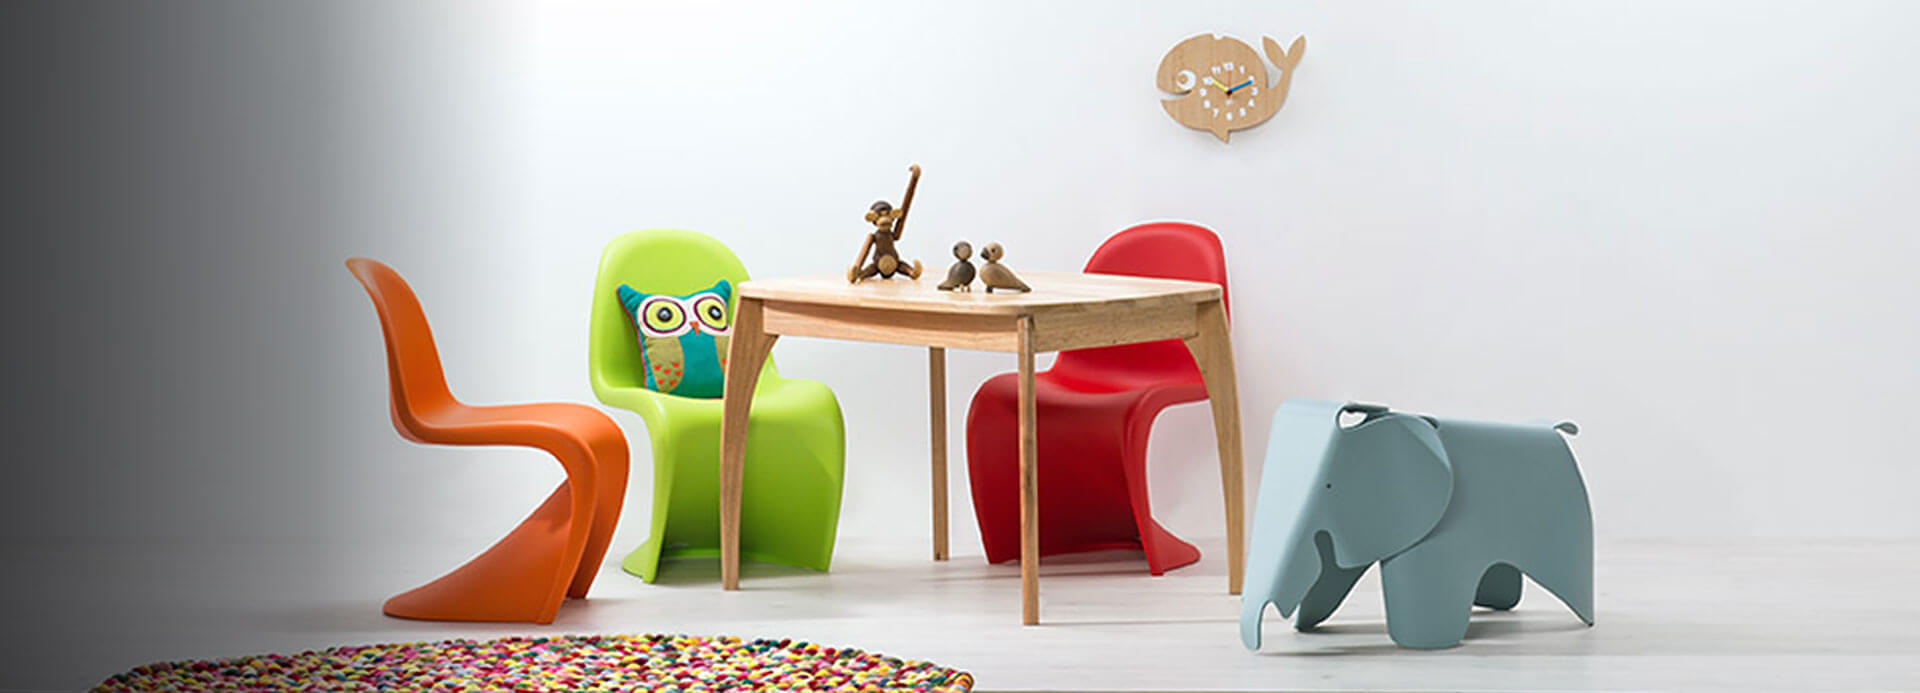 childrens furniture kidu0027s table savings LNOZRTG